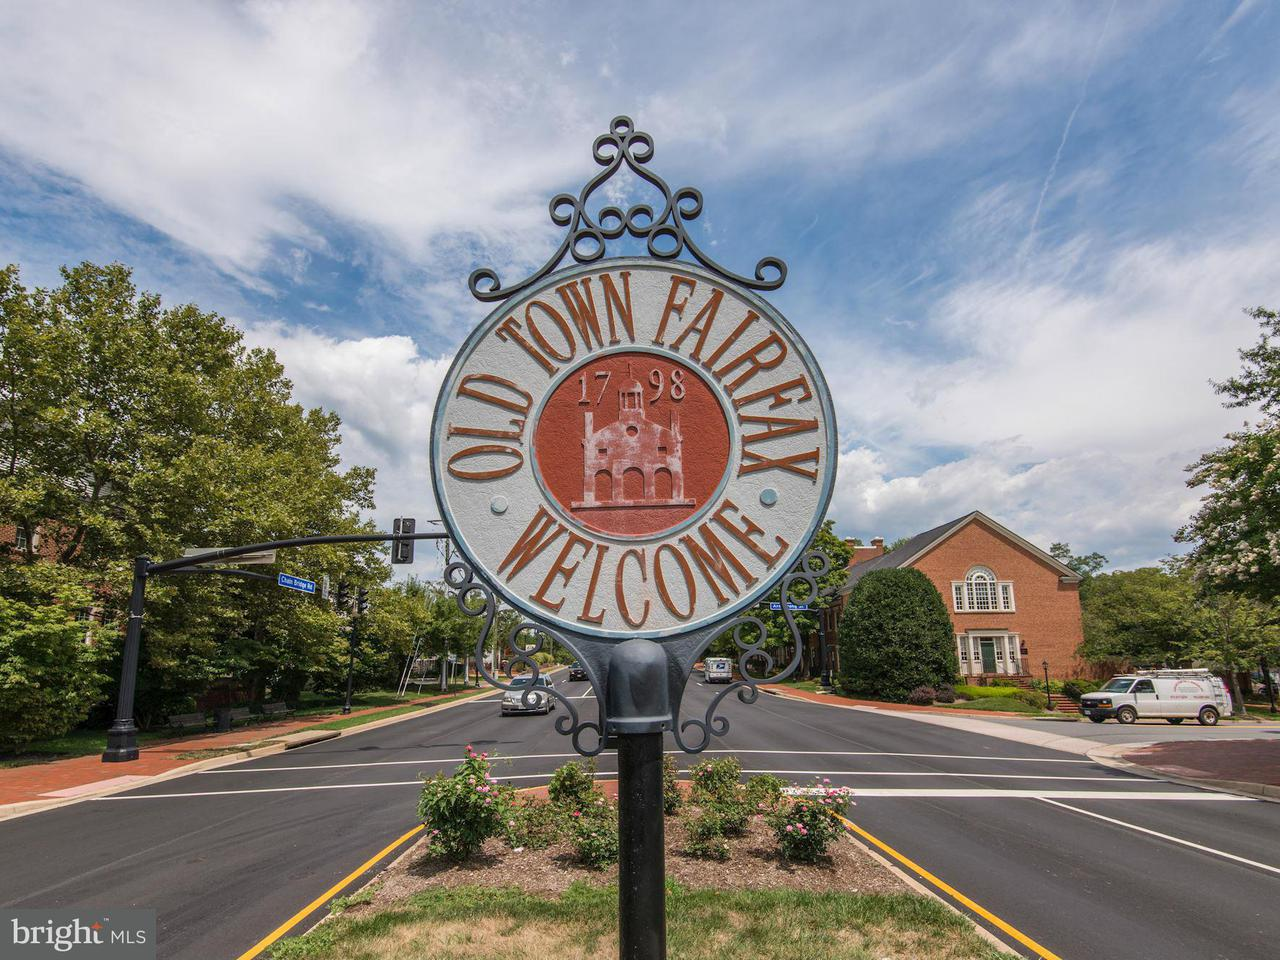 Additional photo for property listing at 3985 Norton Pl #10802 3985 Norton Pl #10802 Fairfax, Virginia 22030 Estados Unidos